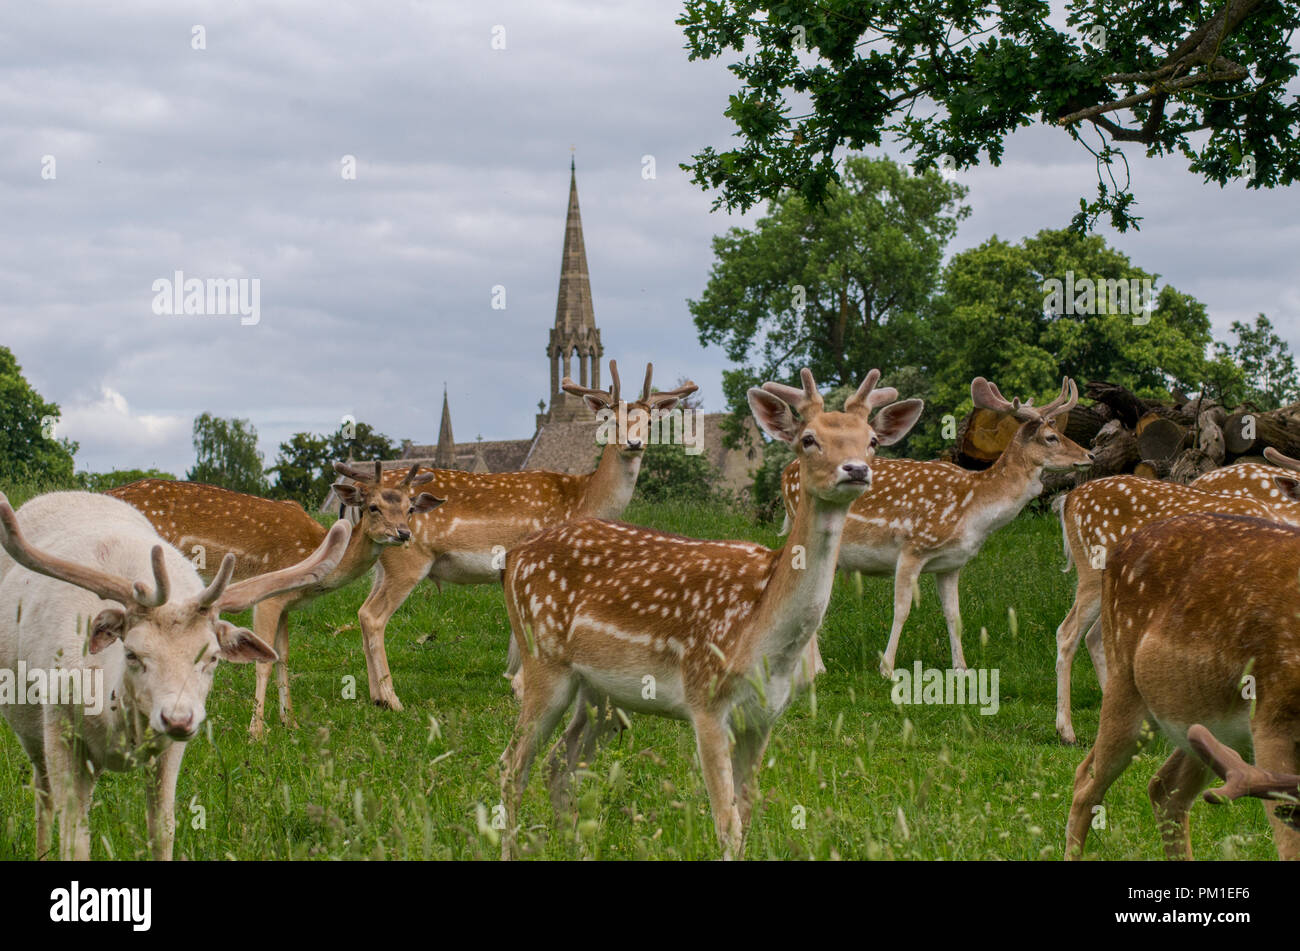 A herd of fallow deer graze in a long grassed meadow, with a traditional English church steeple in the background. One of the deer is looking directly - Stock Image